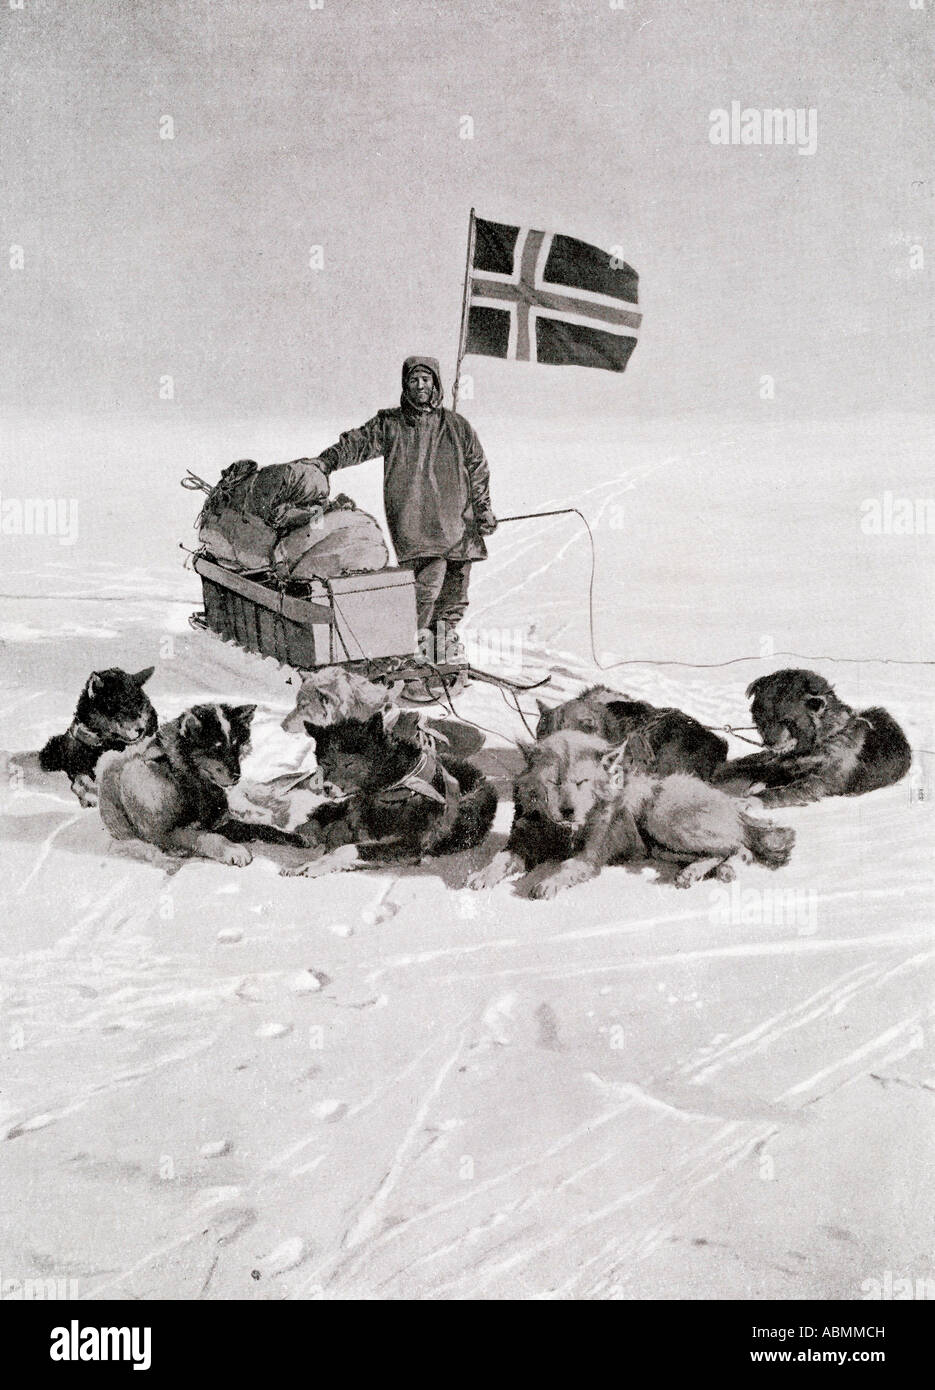 Kapitän Roald Engelbregt Gravning Amundsen 1872 bis 1928 in the South Pole unter norwegischer Flagge Stockfoto